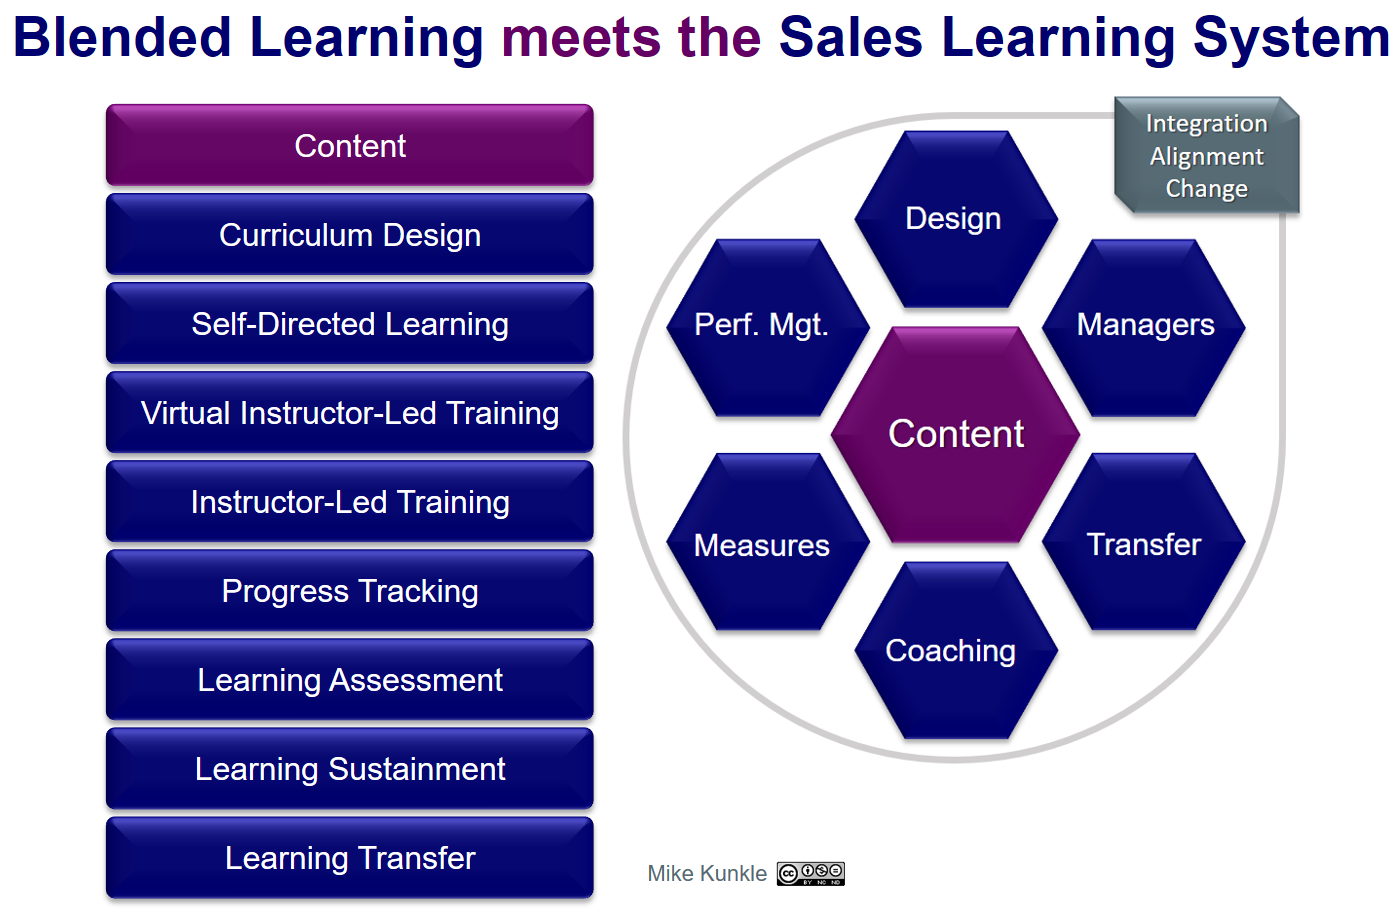 Classroom Curriculum Design ~ How to build a blended sales training curriculum that gets